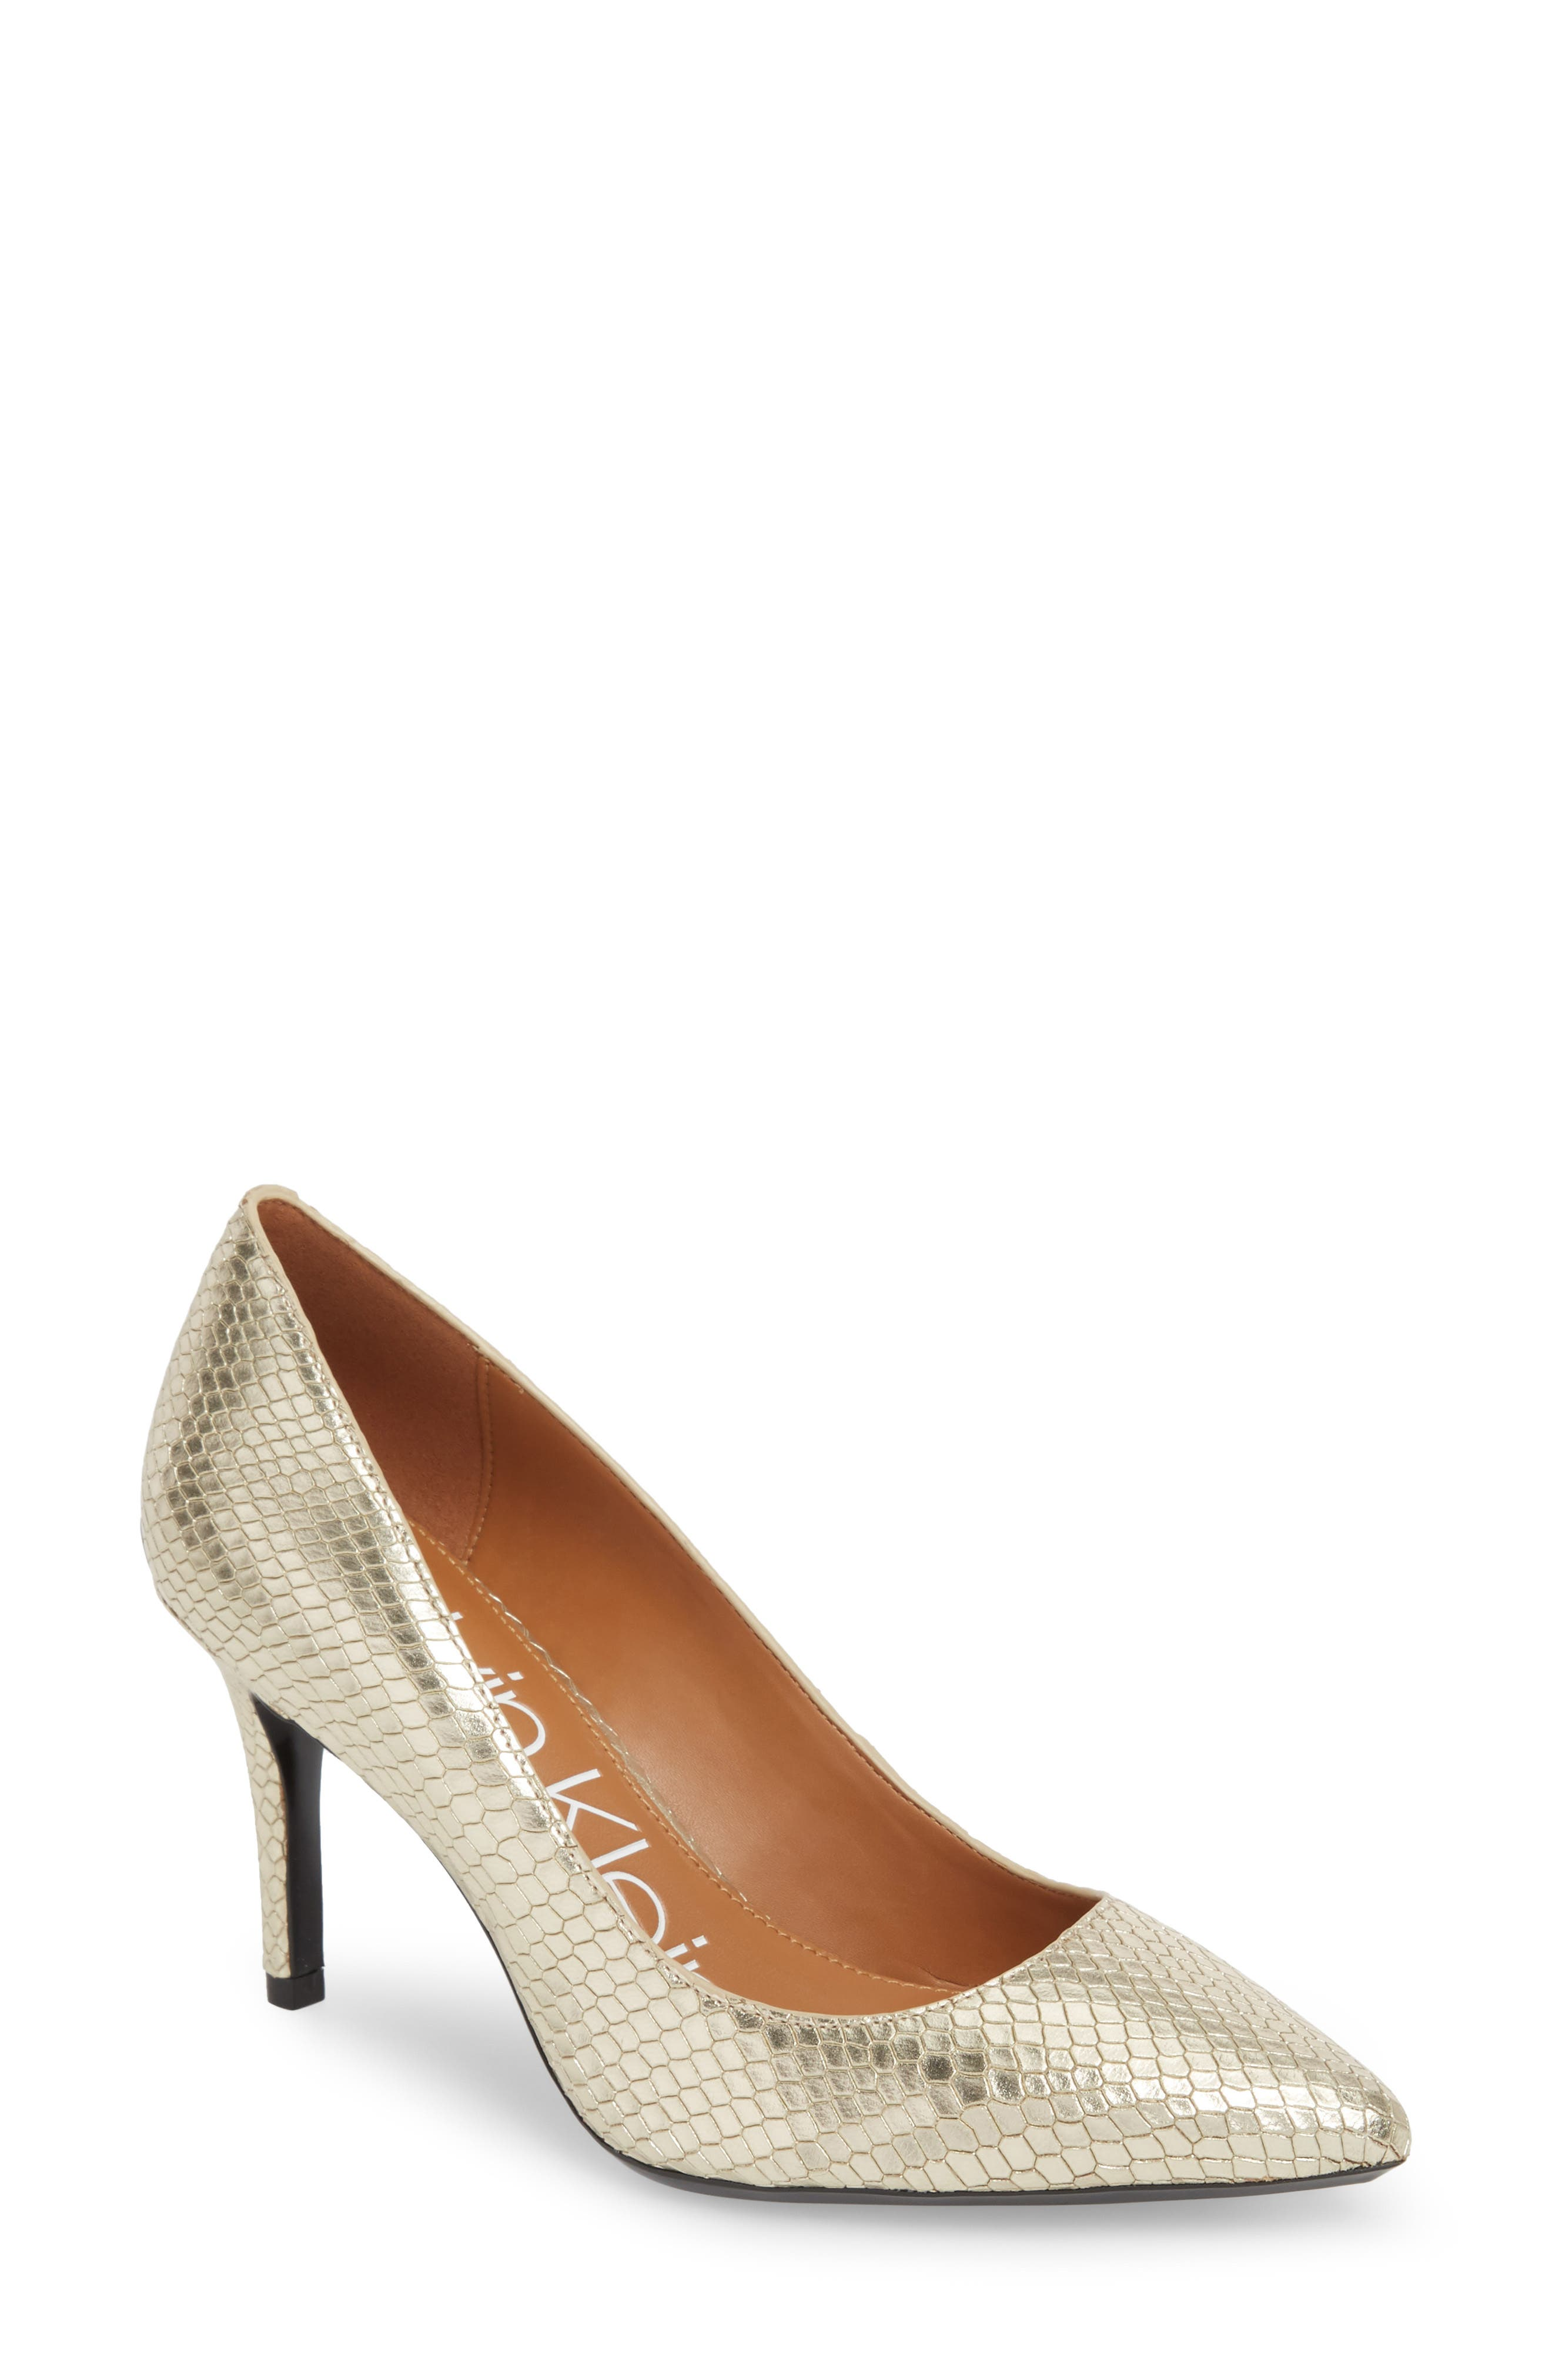 CALVIN KLEIN, 'Gayle' Pointy Toe Pump, Main thumbnail 1, color, SOFT GOLD LEATHER